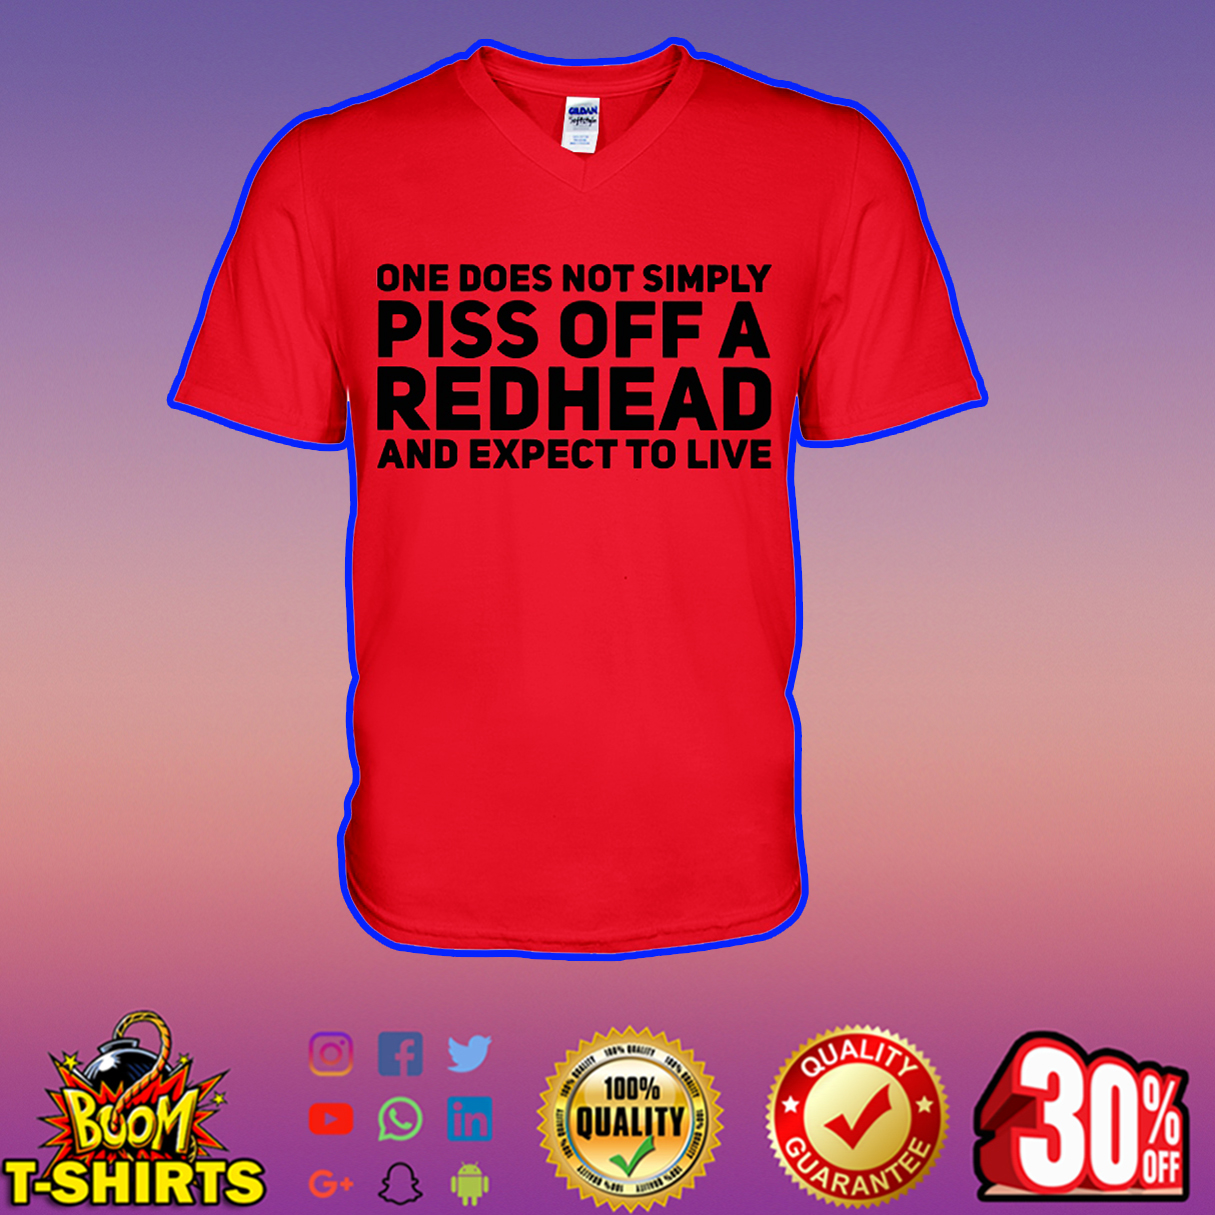 One does not simply piss off a redhead and expect to live v-neck